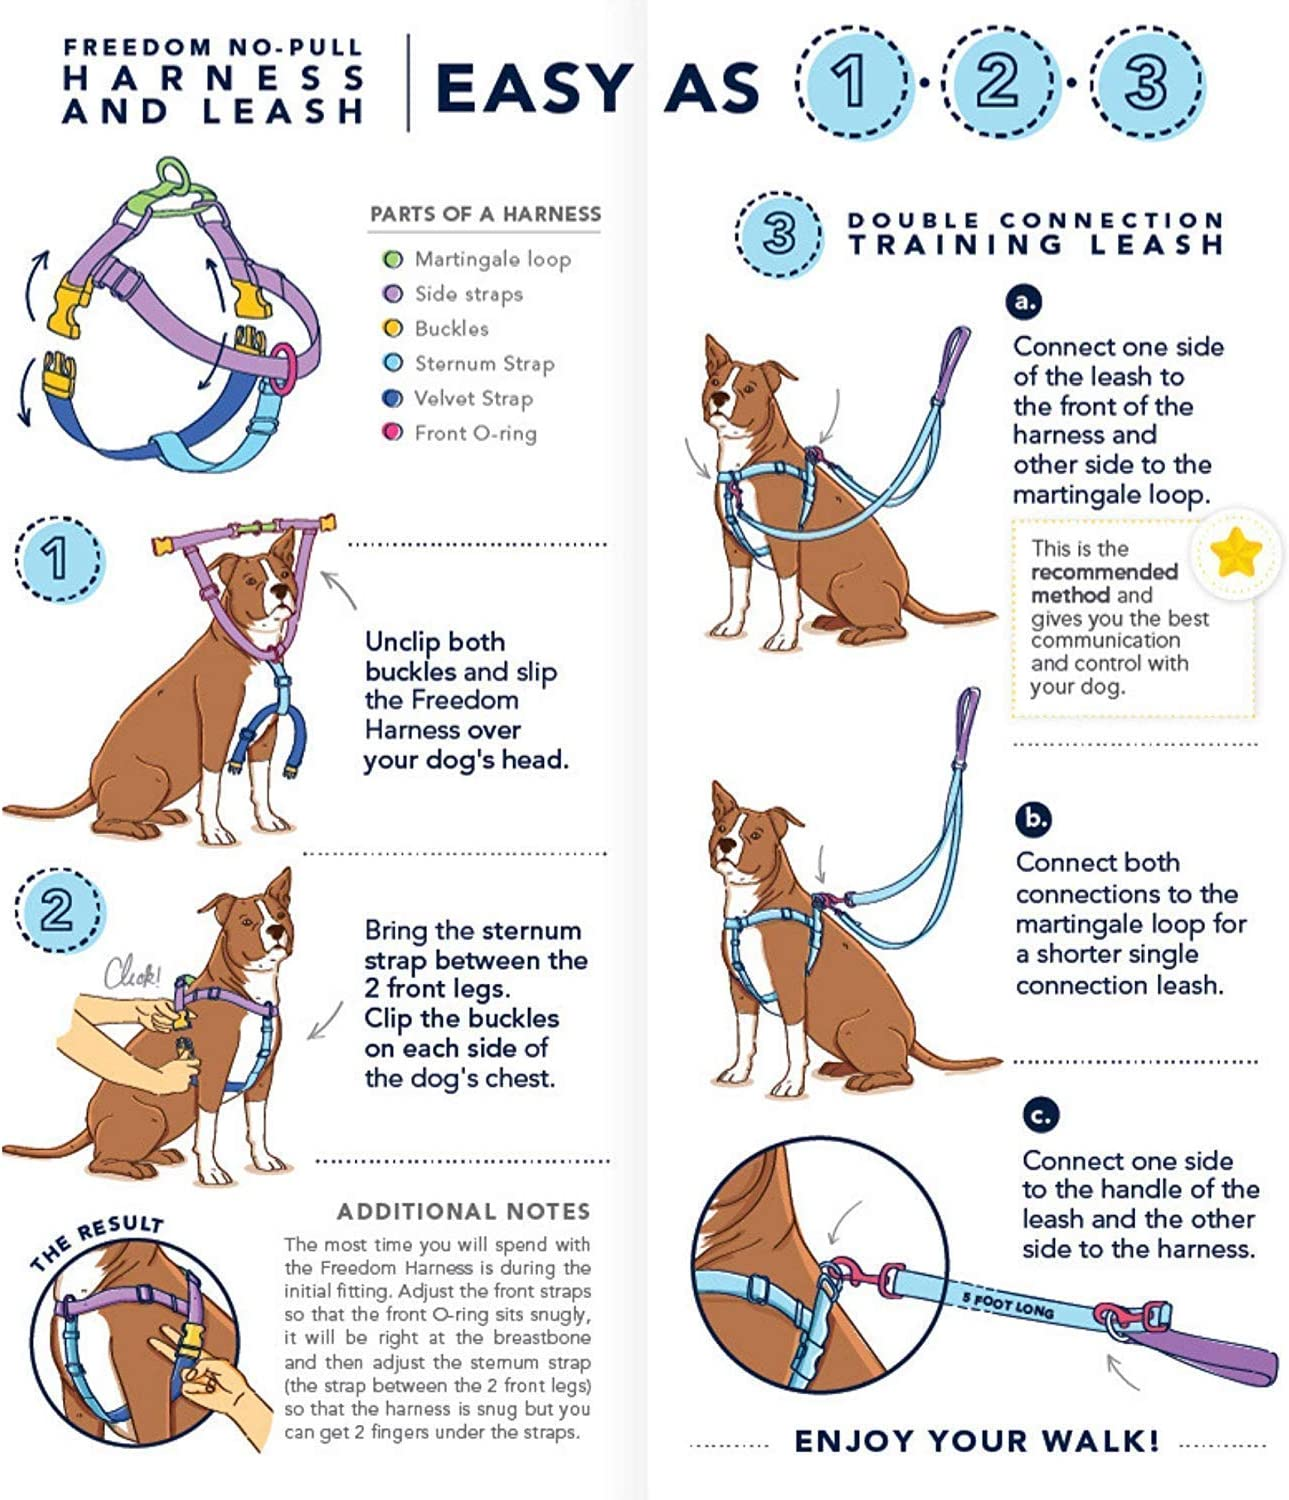 Made in USA Adjustable Gentle Comfortable Control for Easy Dog Walking 2 Hounds Design Freedom No Pull Dog Harness with Leash for Small Medium and Large Dogs